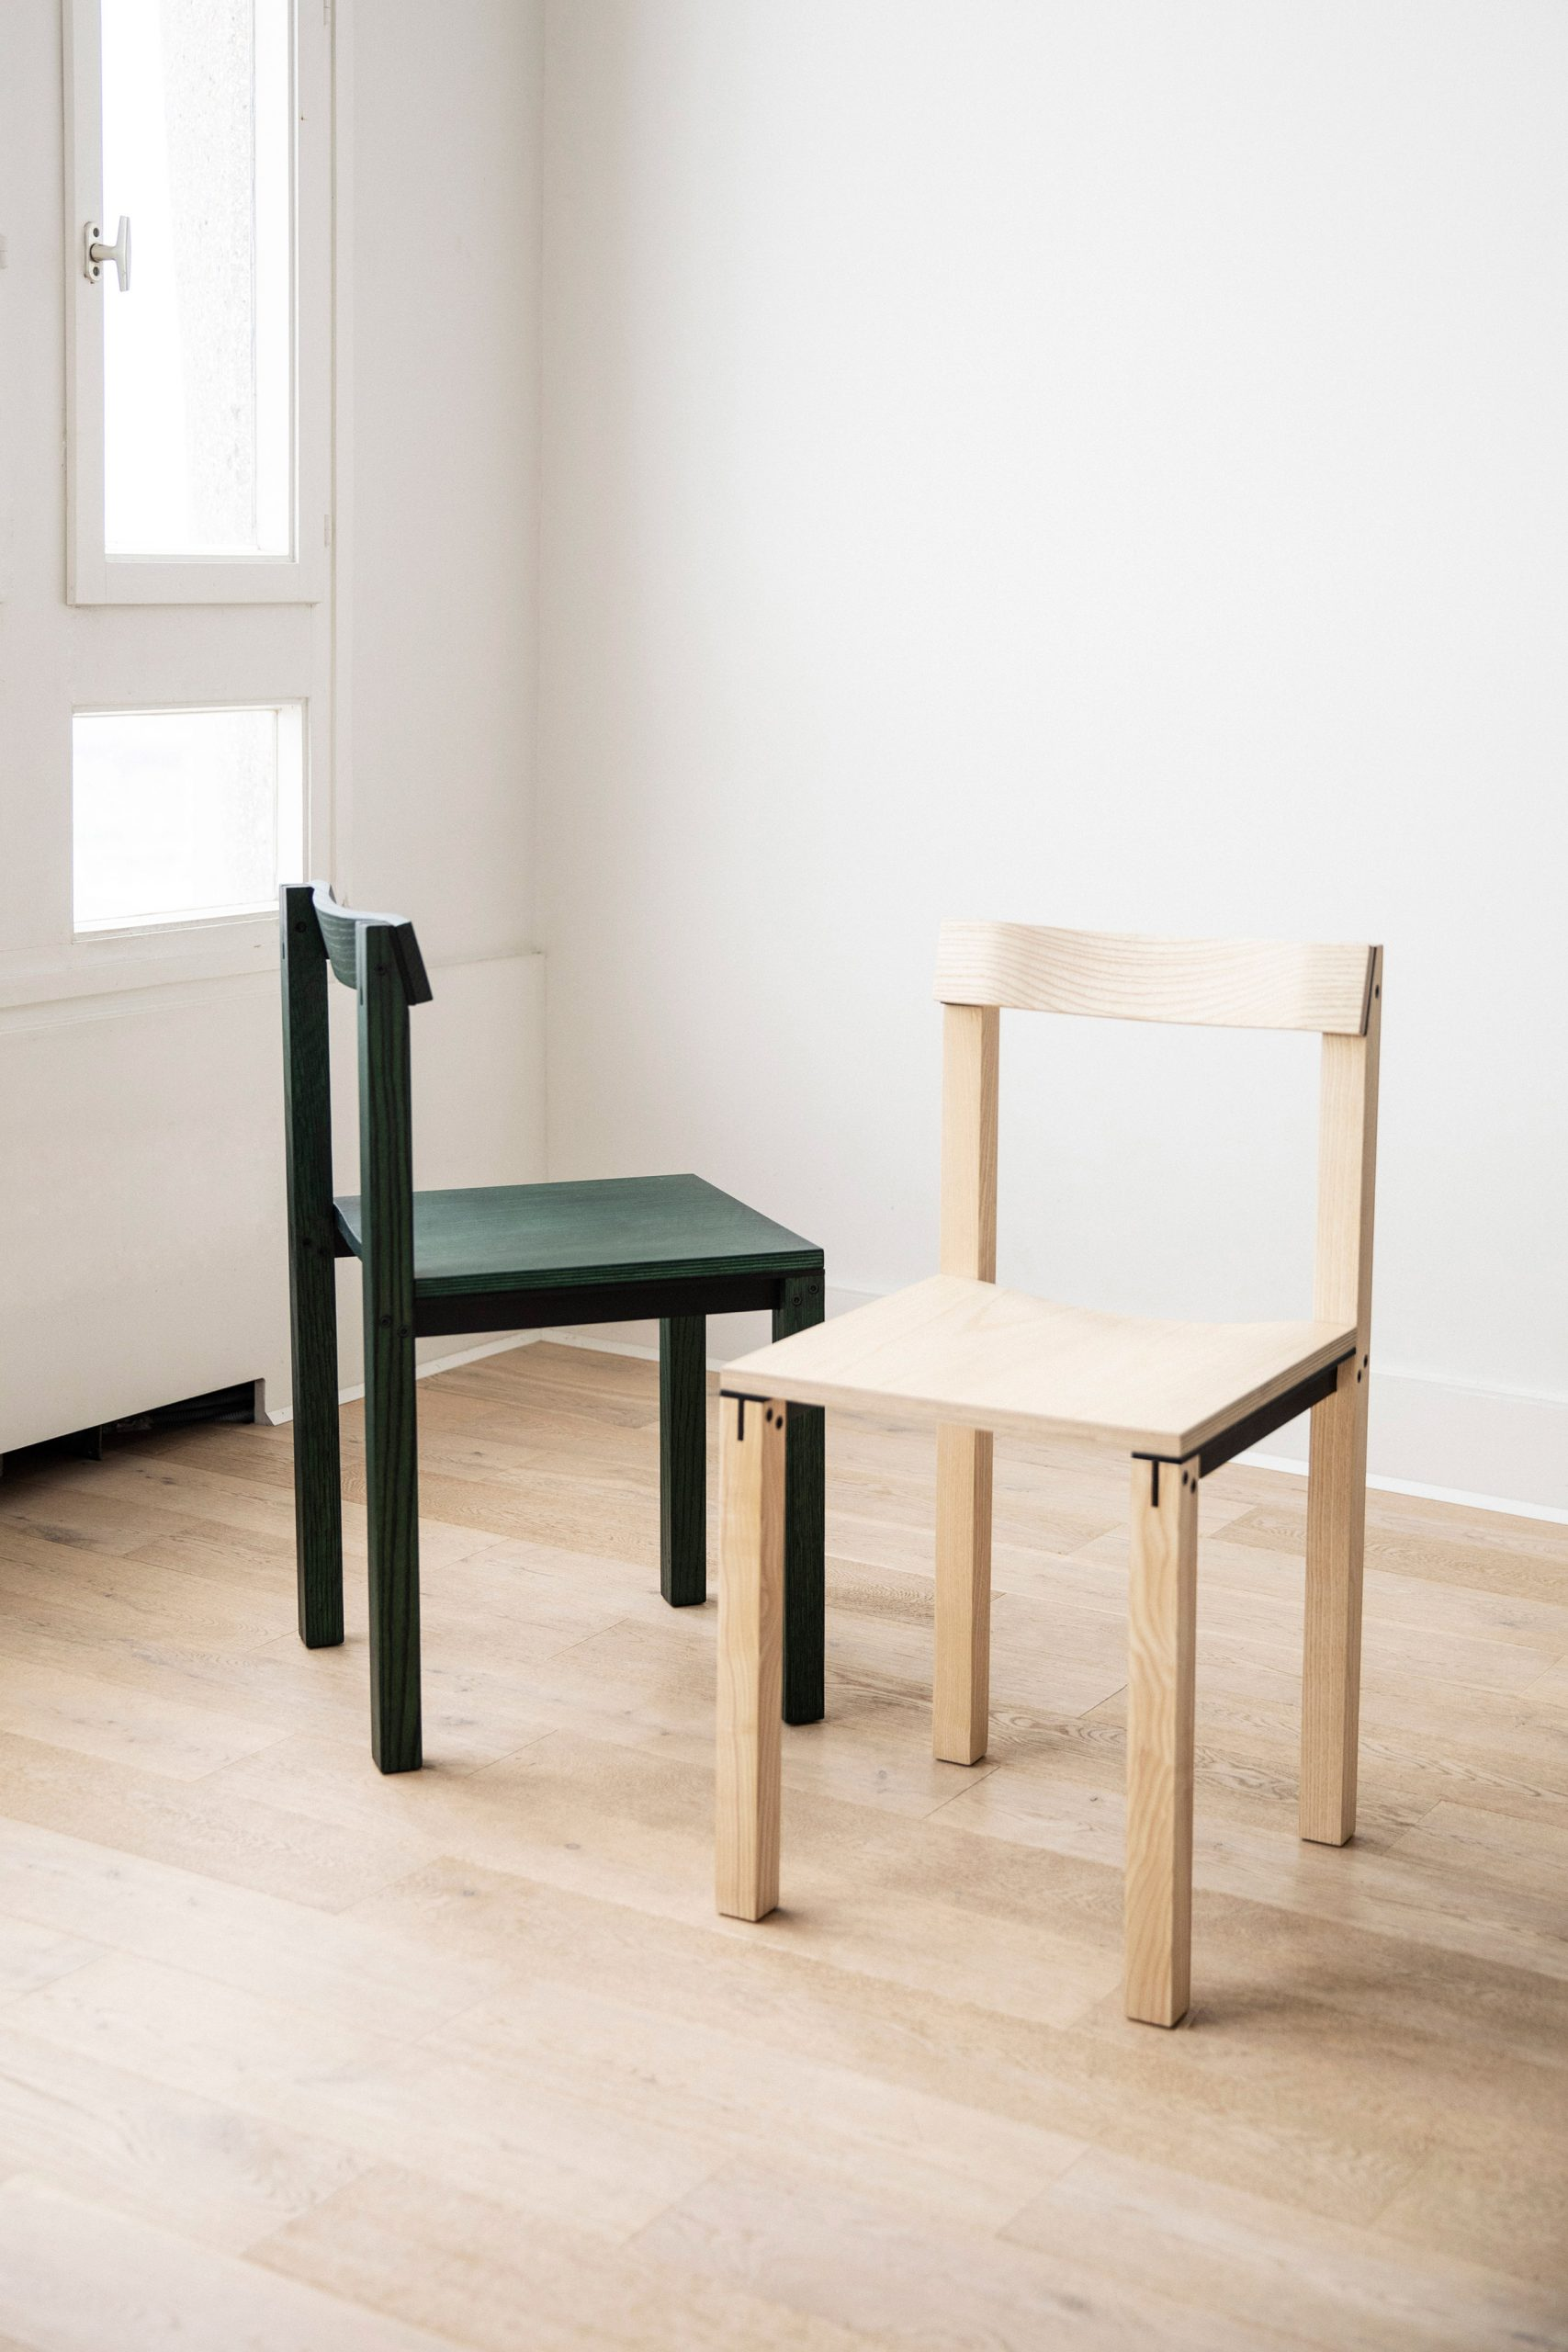 Tal chair in green oak and ash